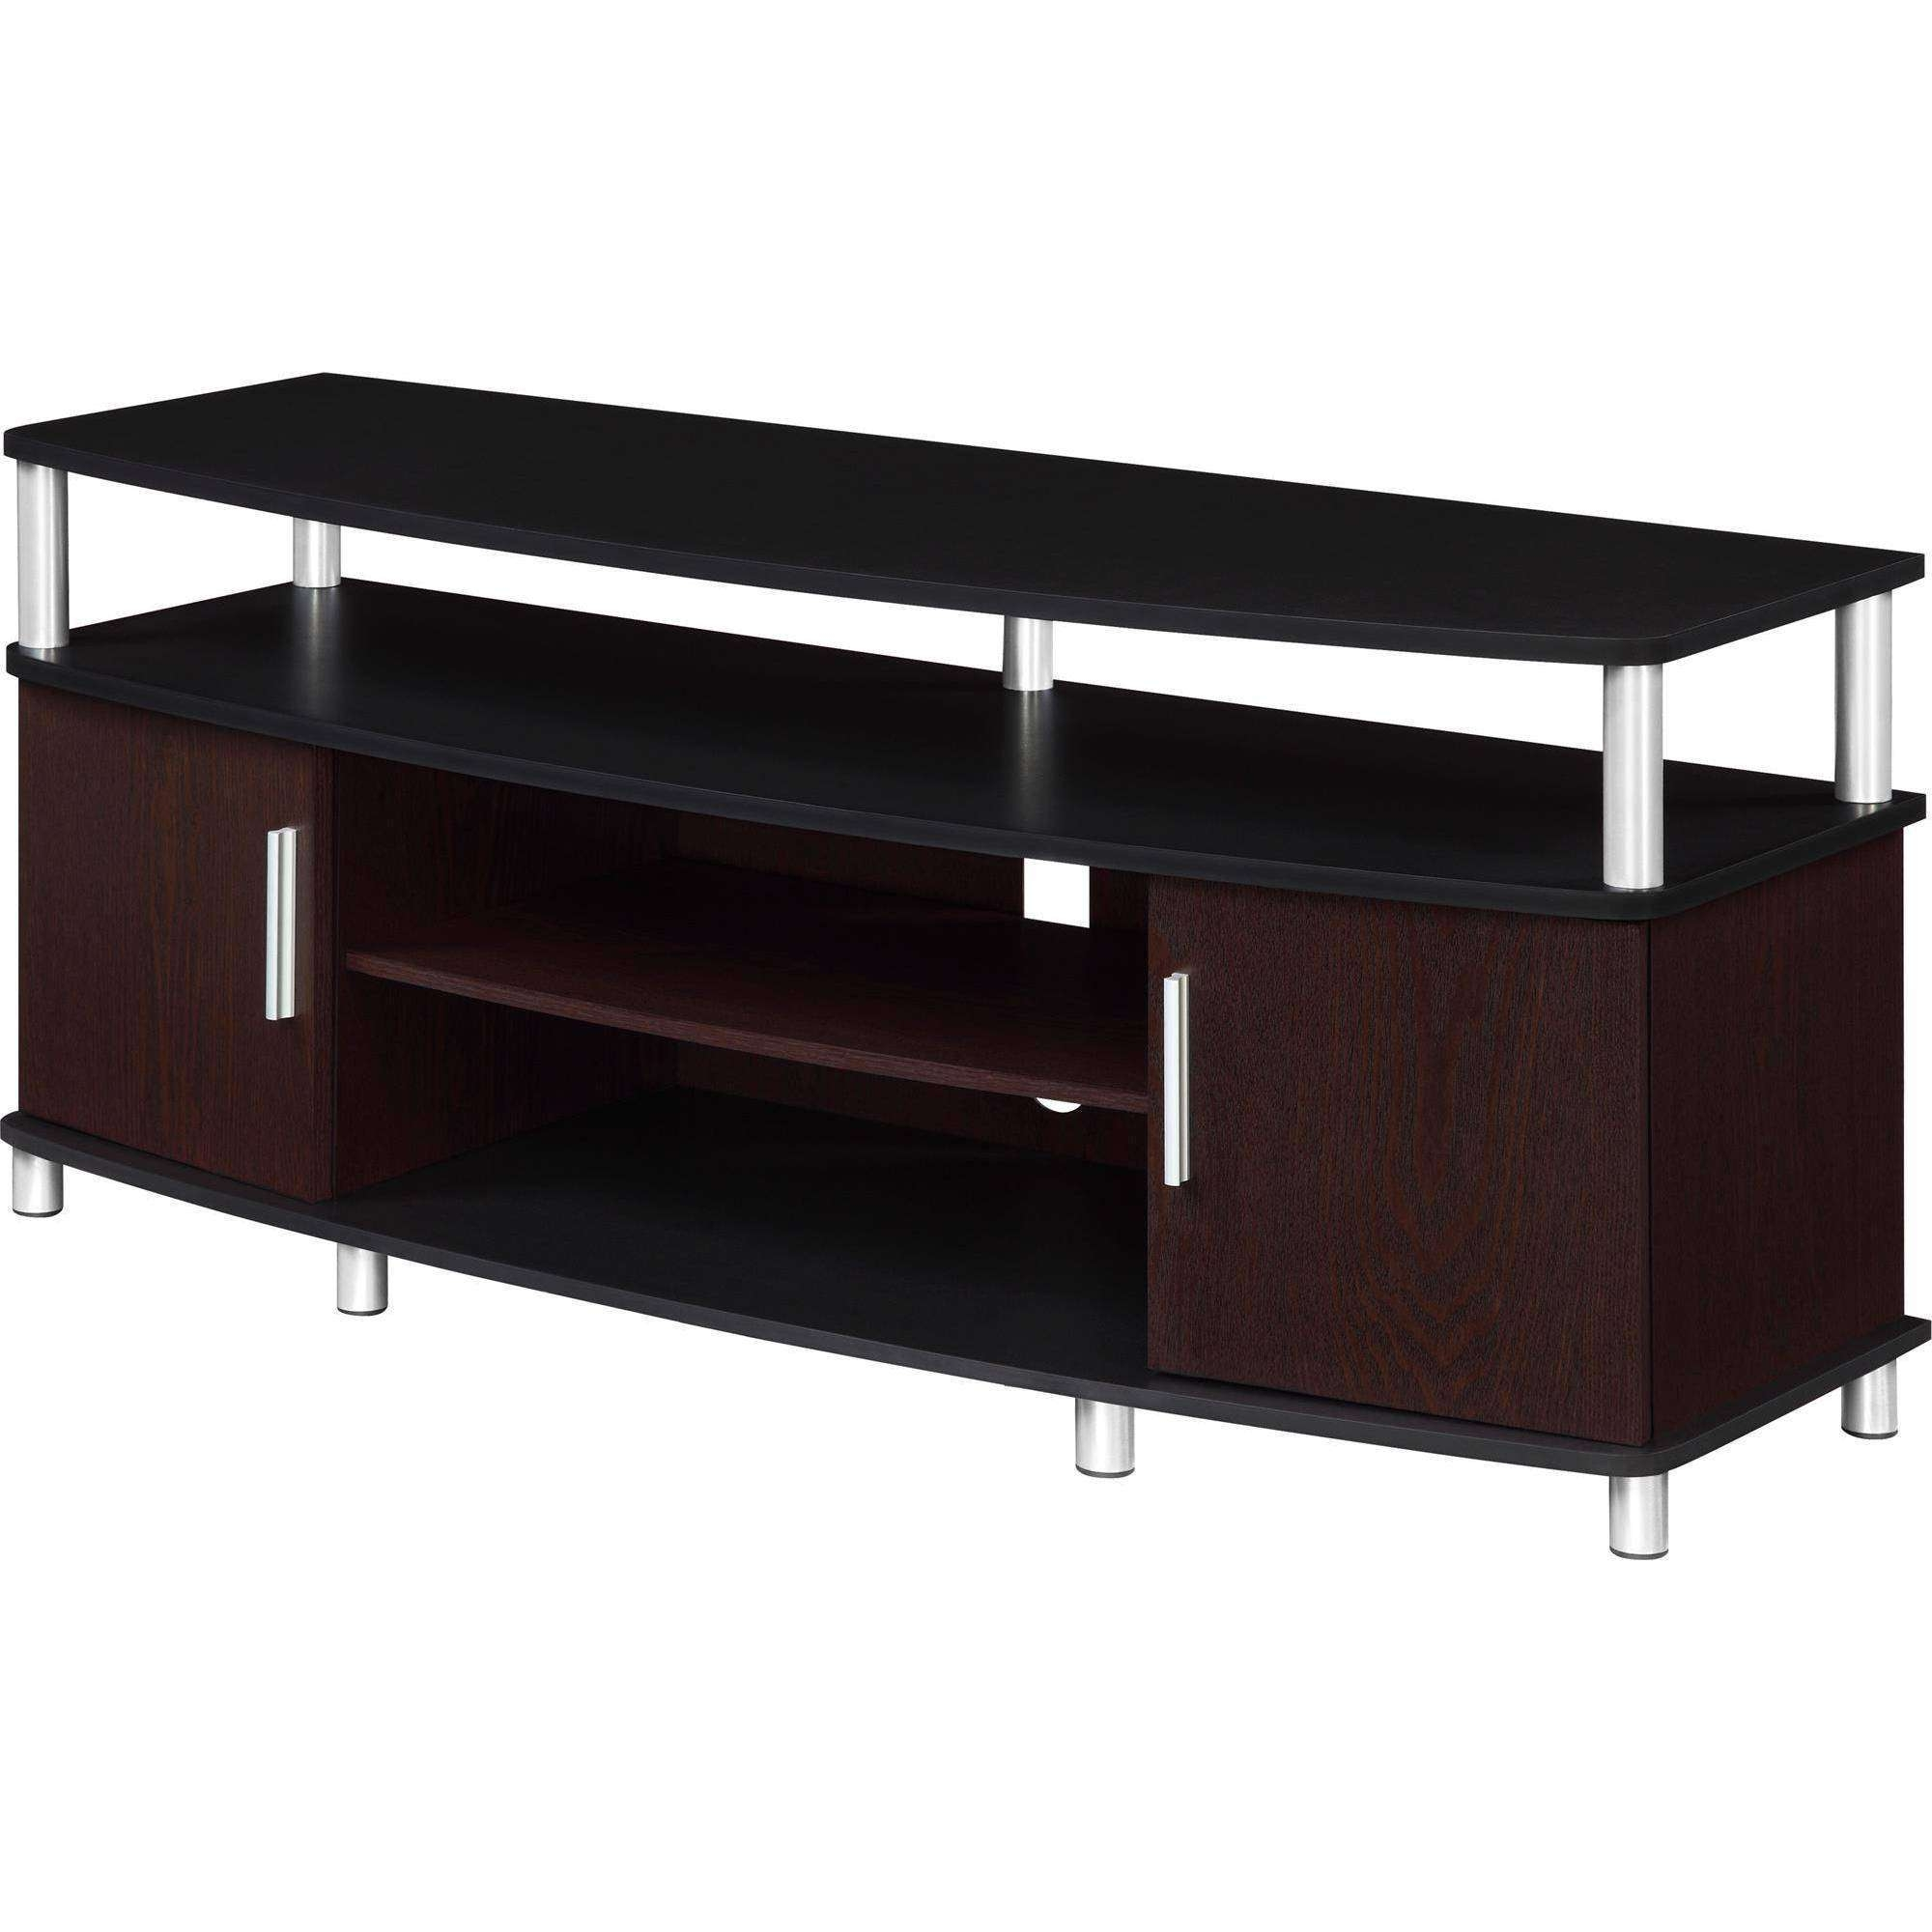 Tv : Modern Low Tv Stands Horrifying Modern Low Plasma Tv Stand With Modern Low Tv Stands (View 19 of 20)